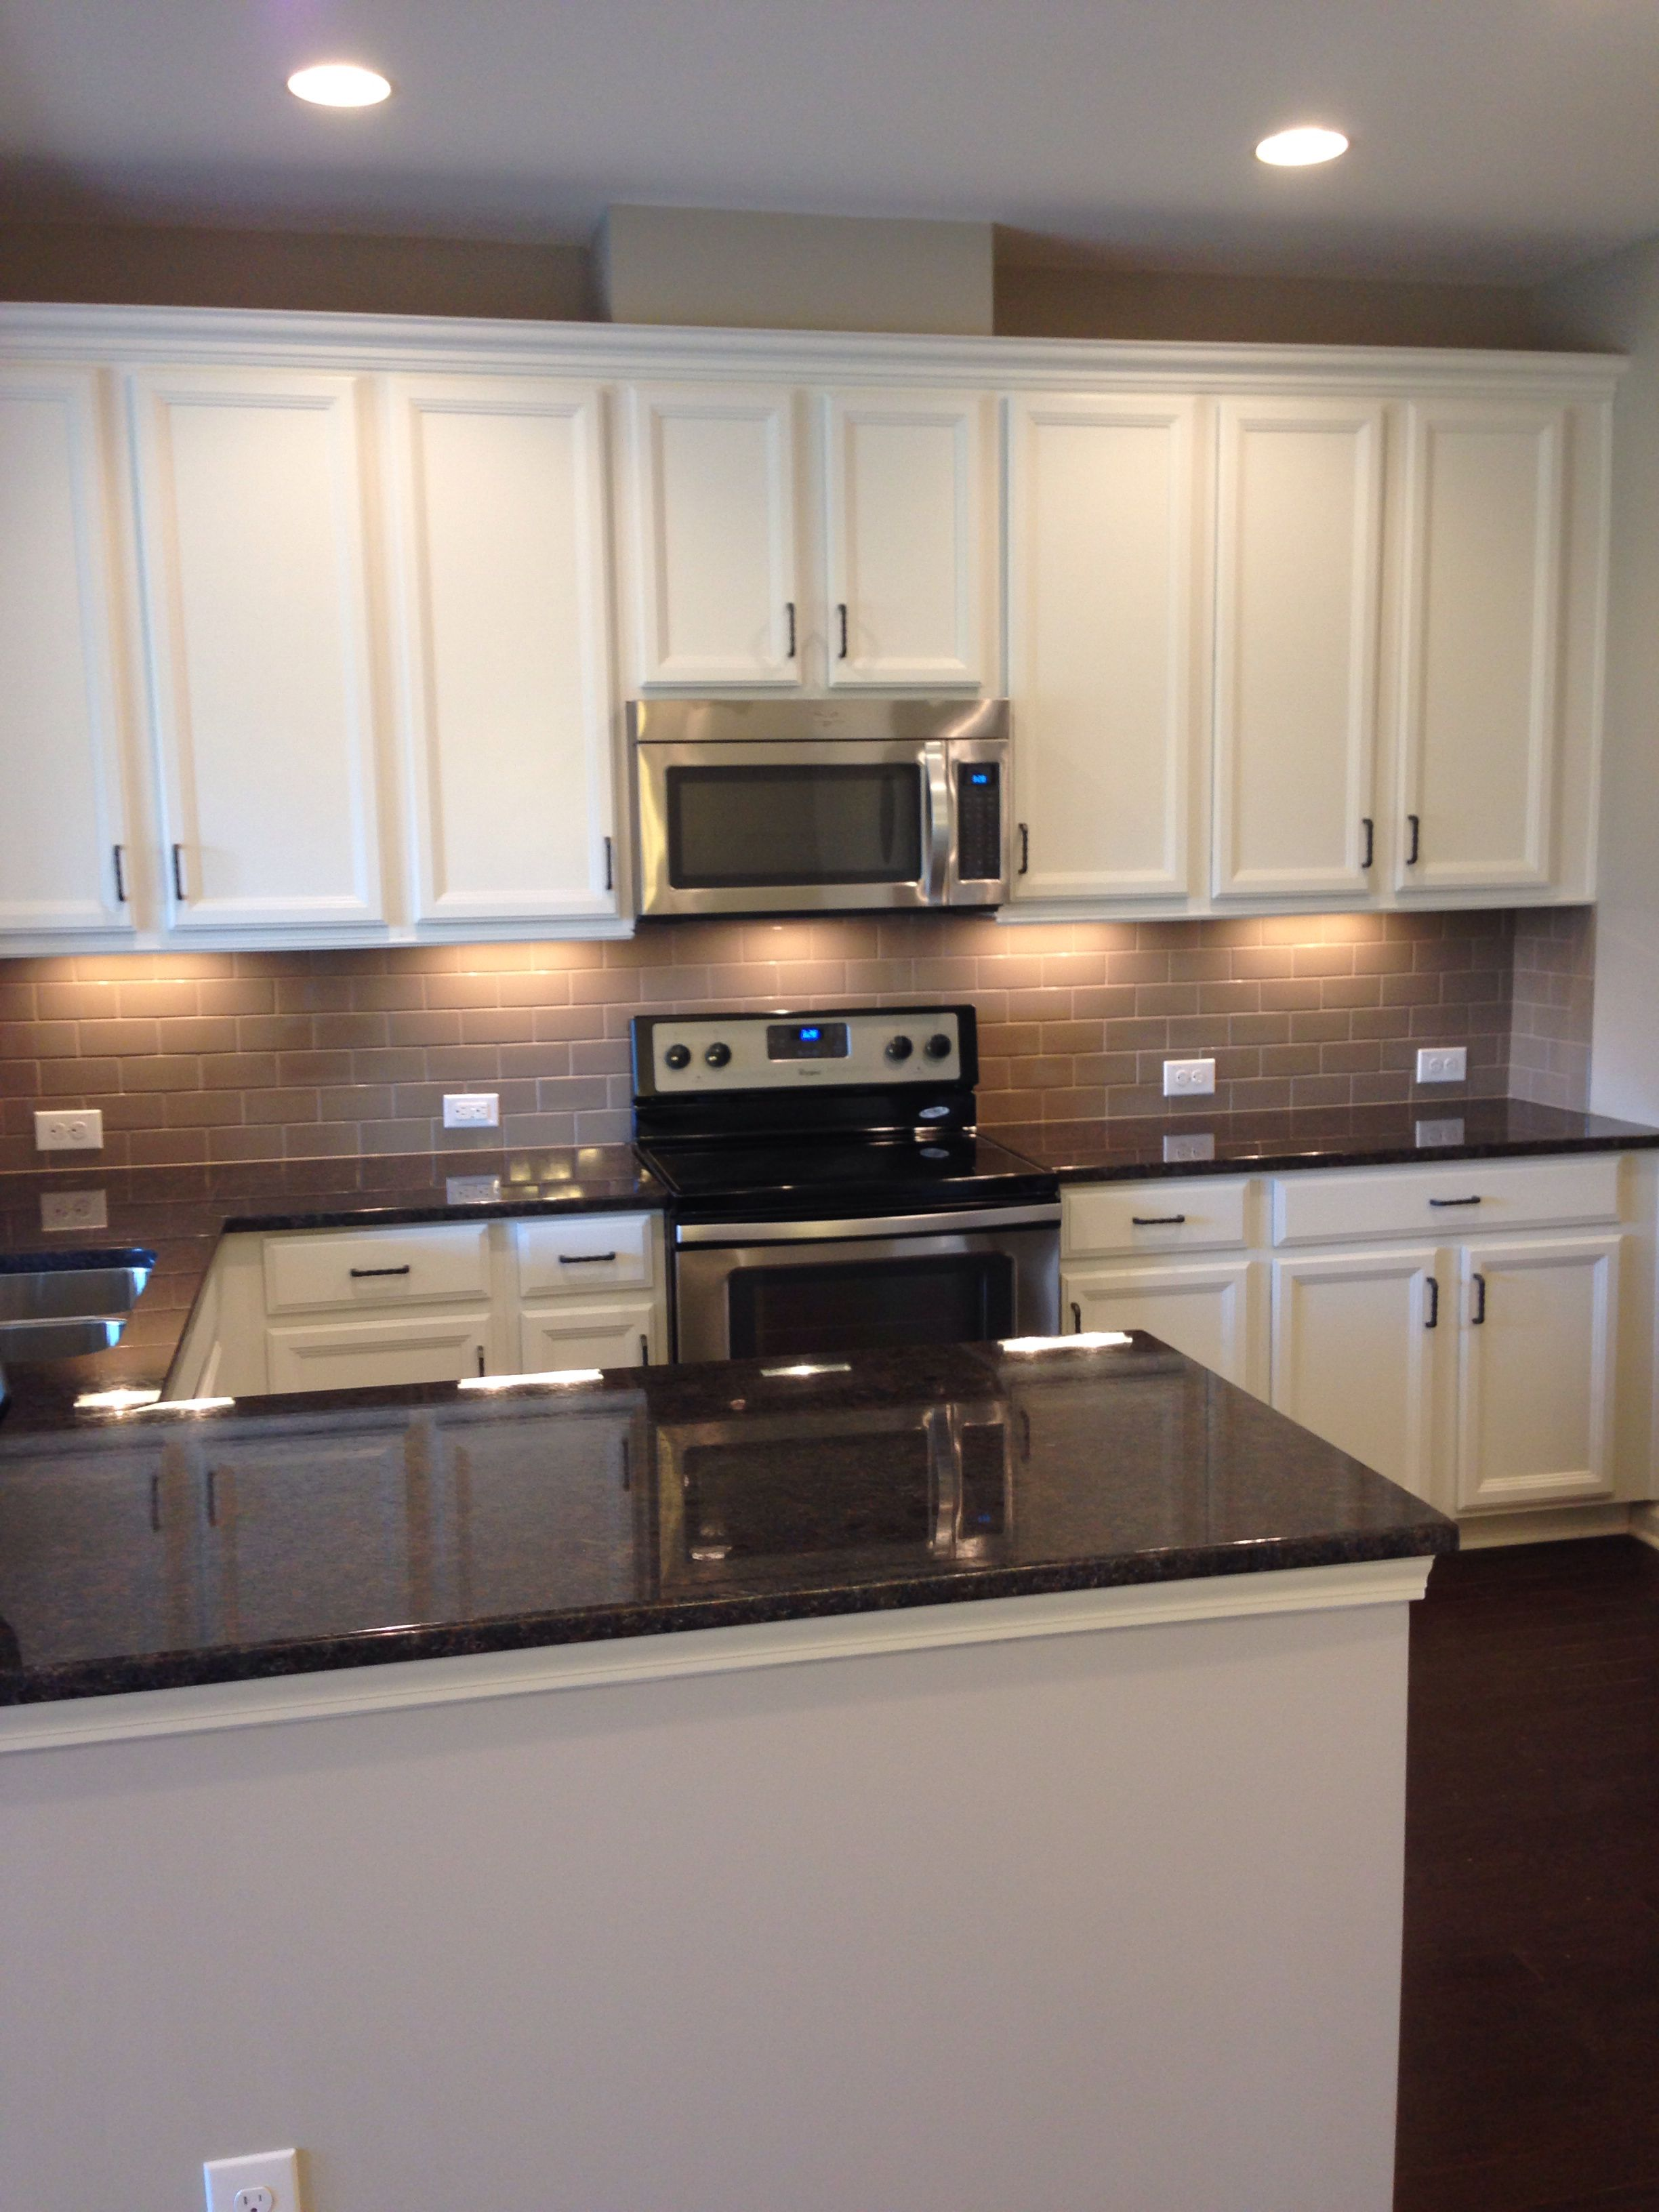 - My New Kitchen! White Cabinets, Tan Subway Tile Backsplash, Suede